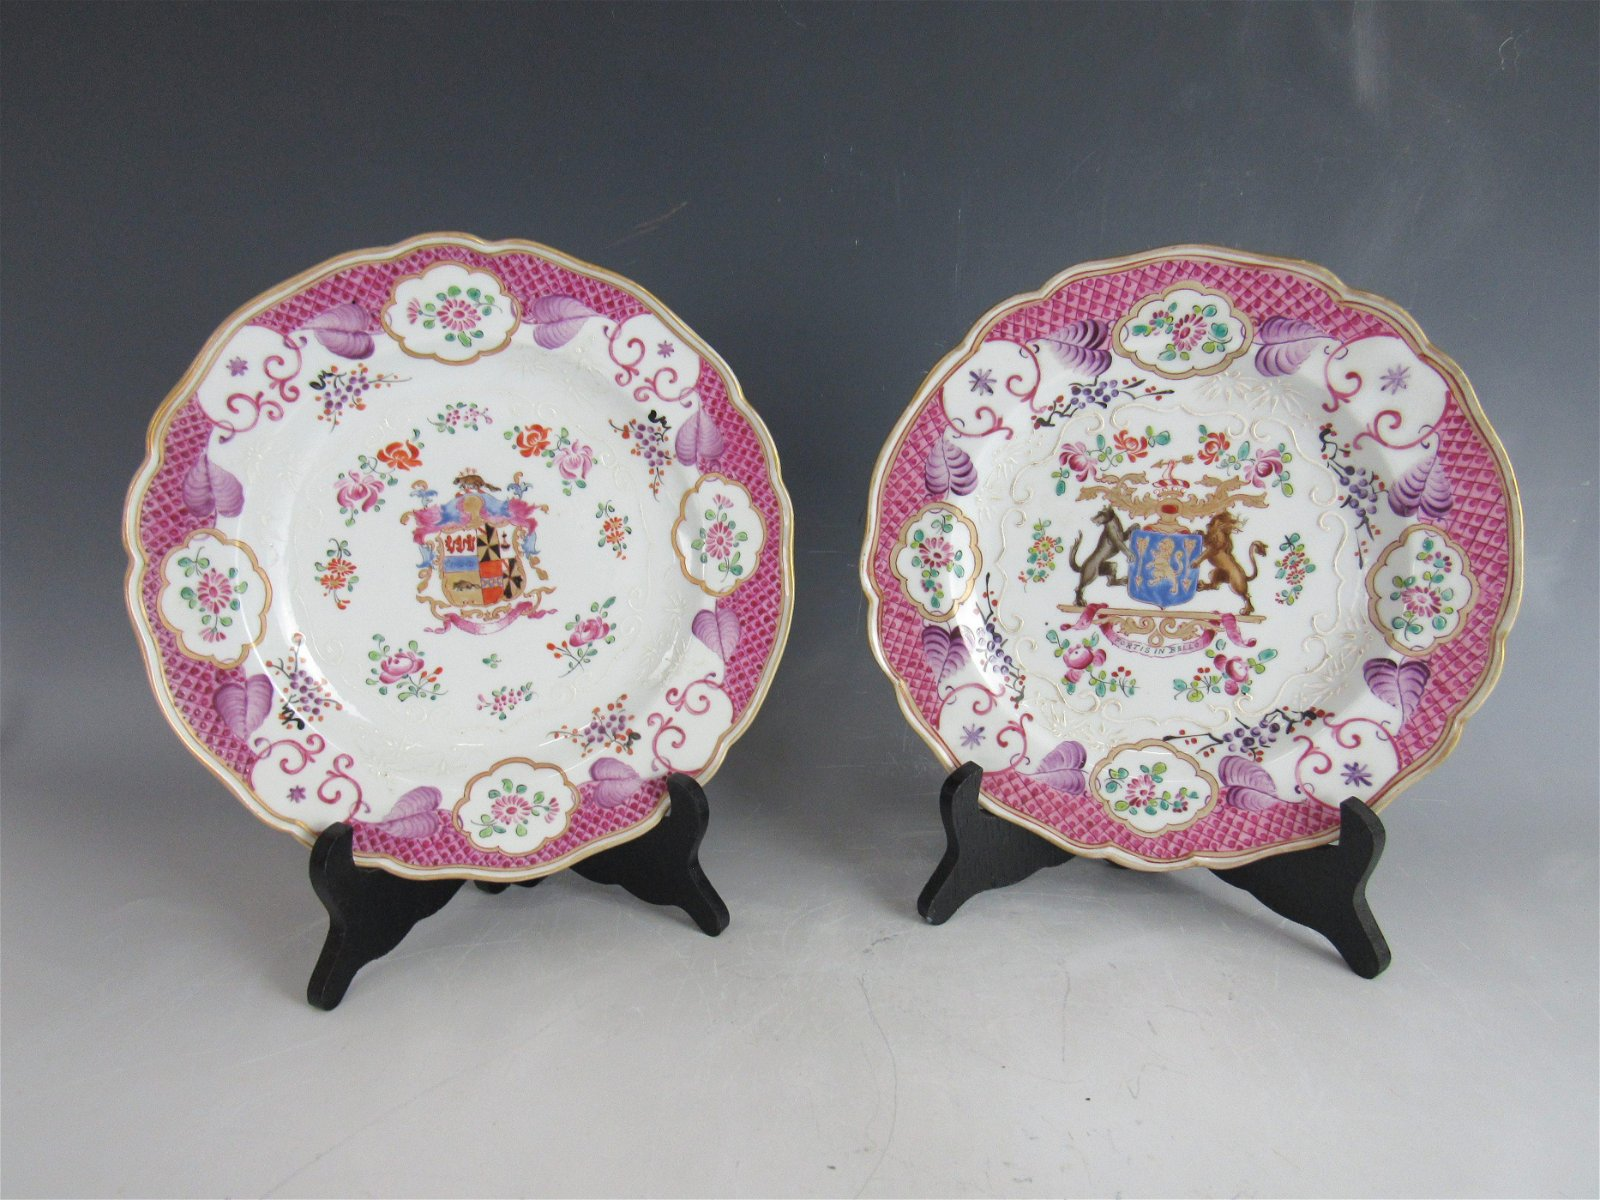 A Group of 2 Chinese Export Porcelain Plate